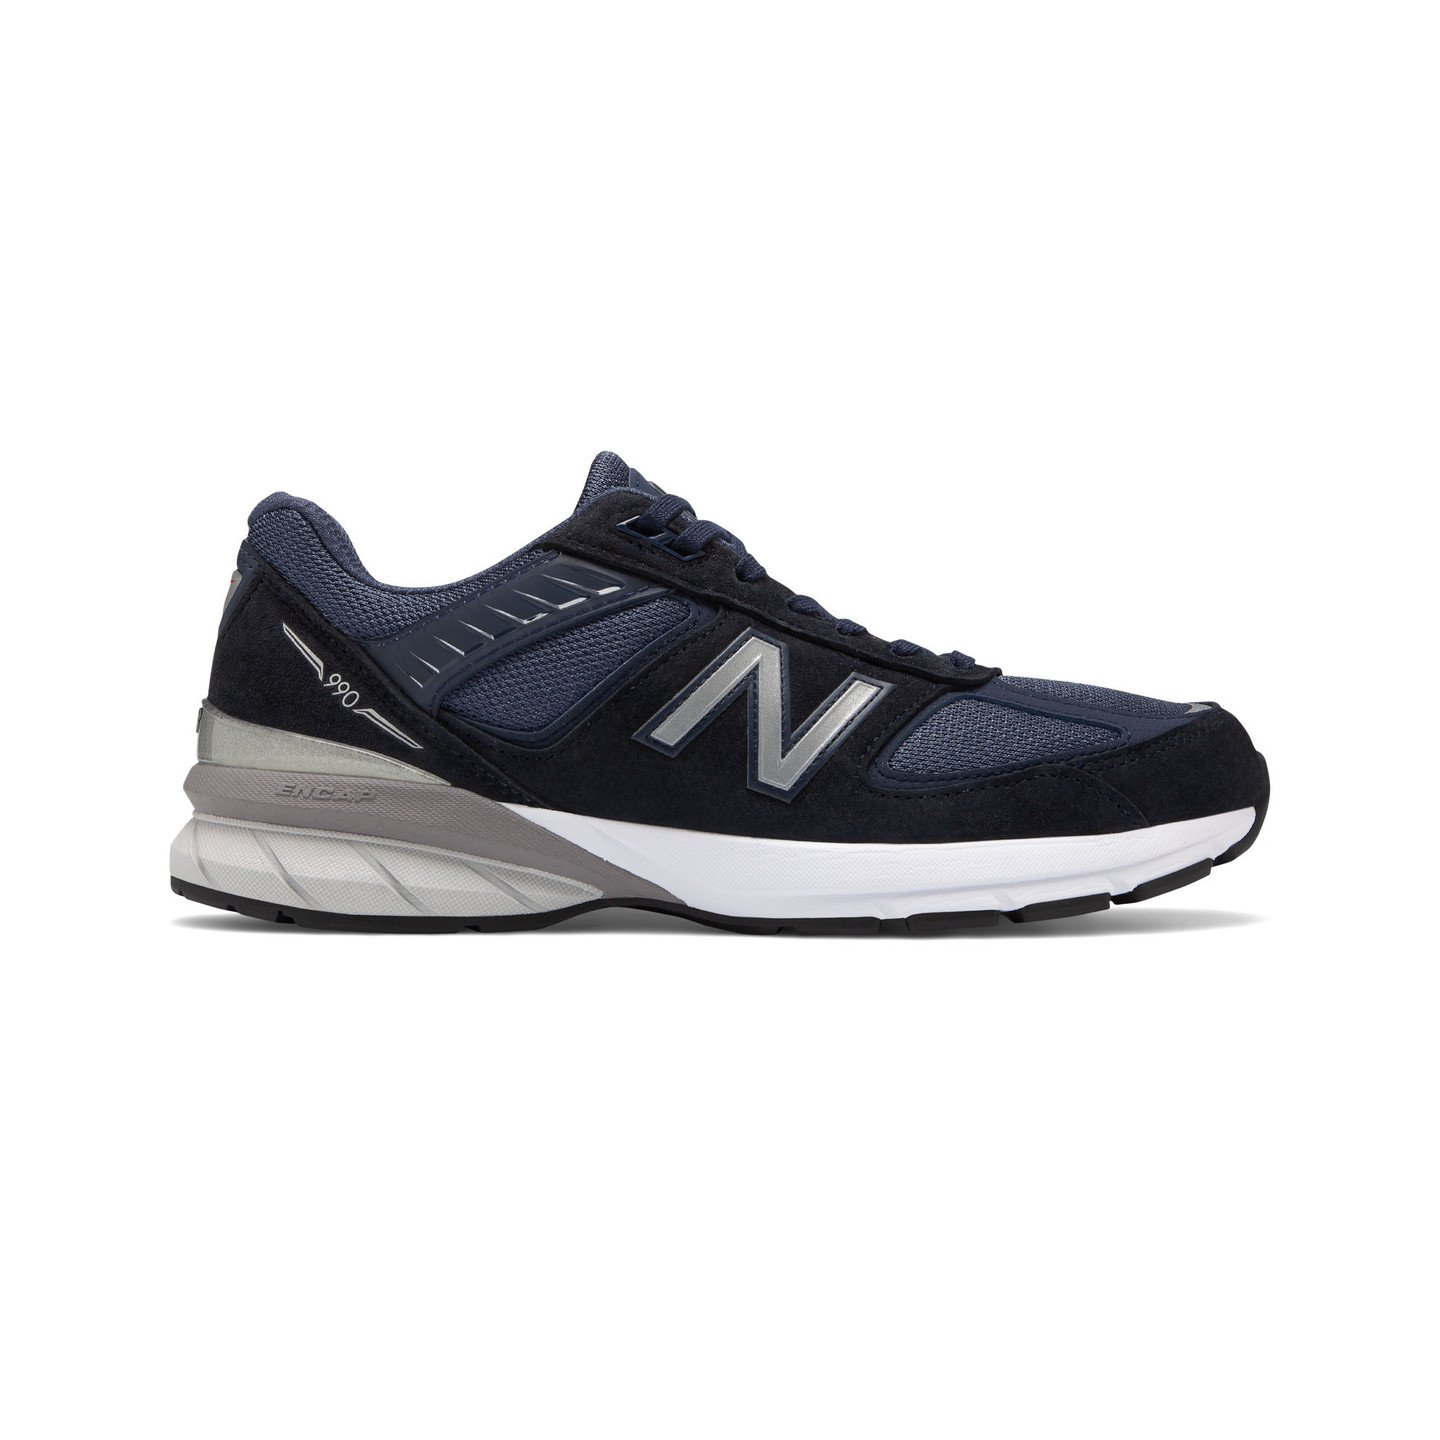 New Balance M990 V5 - Made in USA Navy / Reflective Silver M990NV5